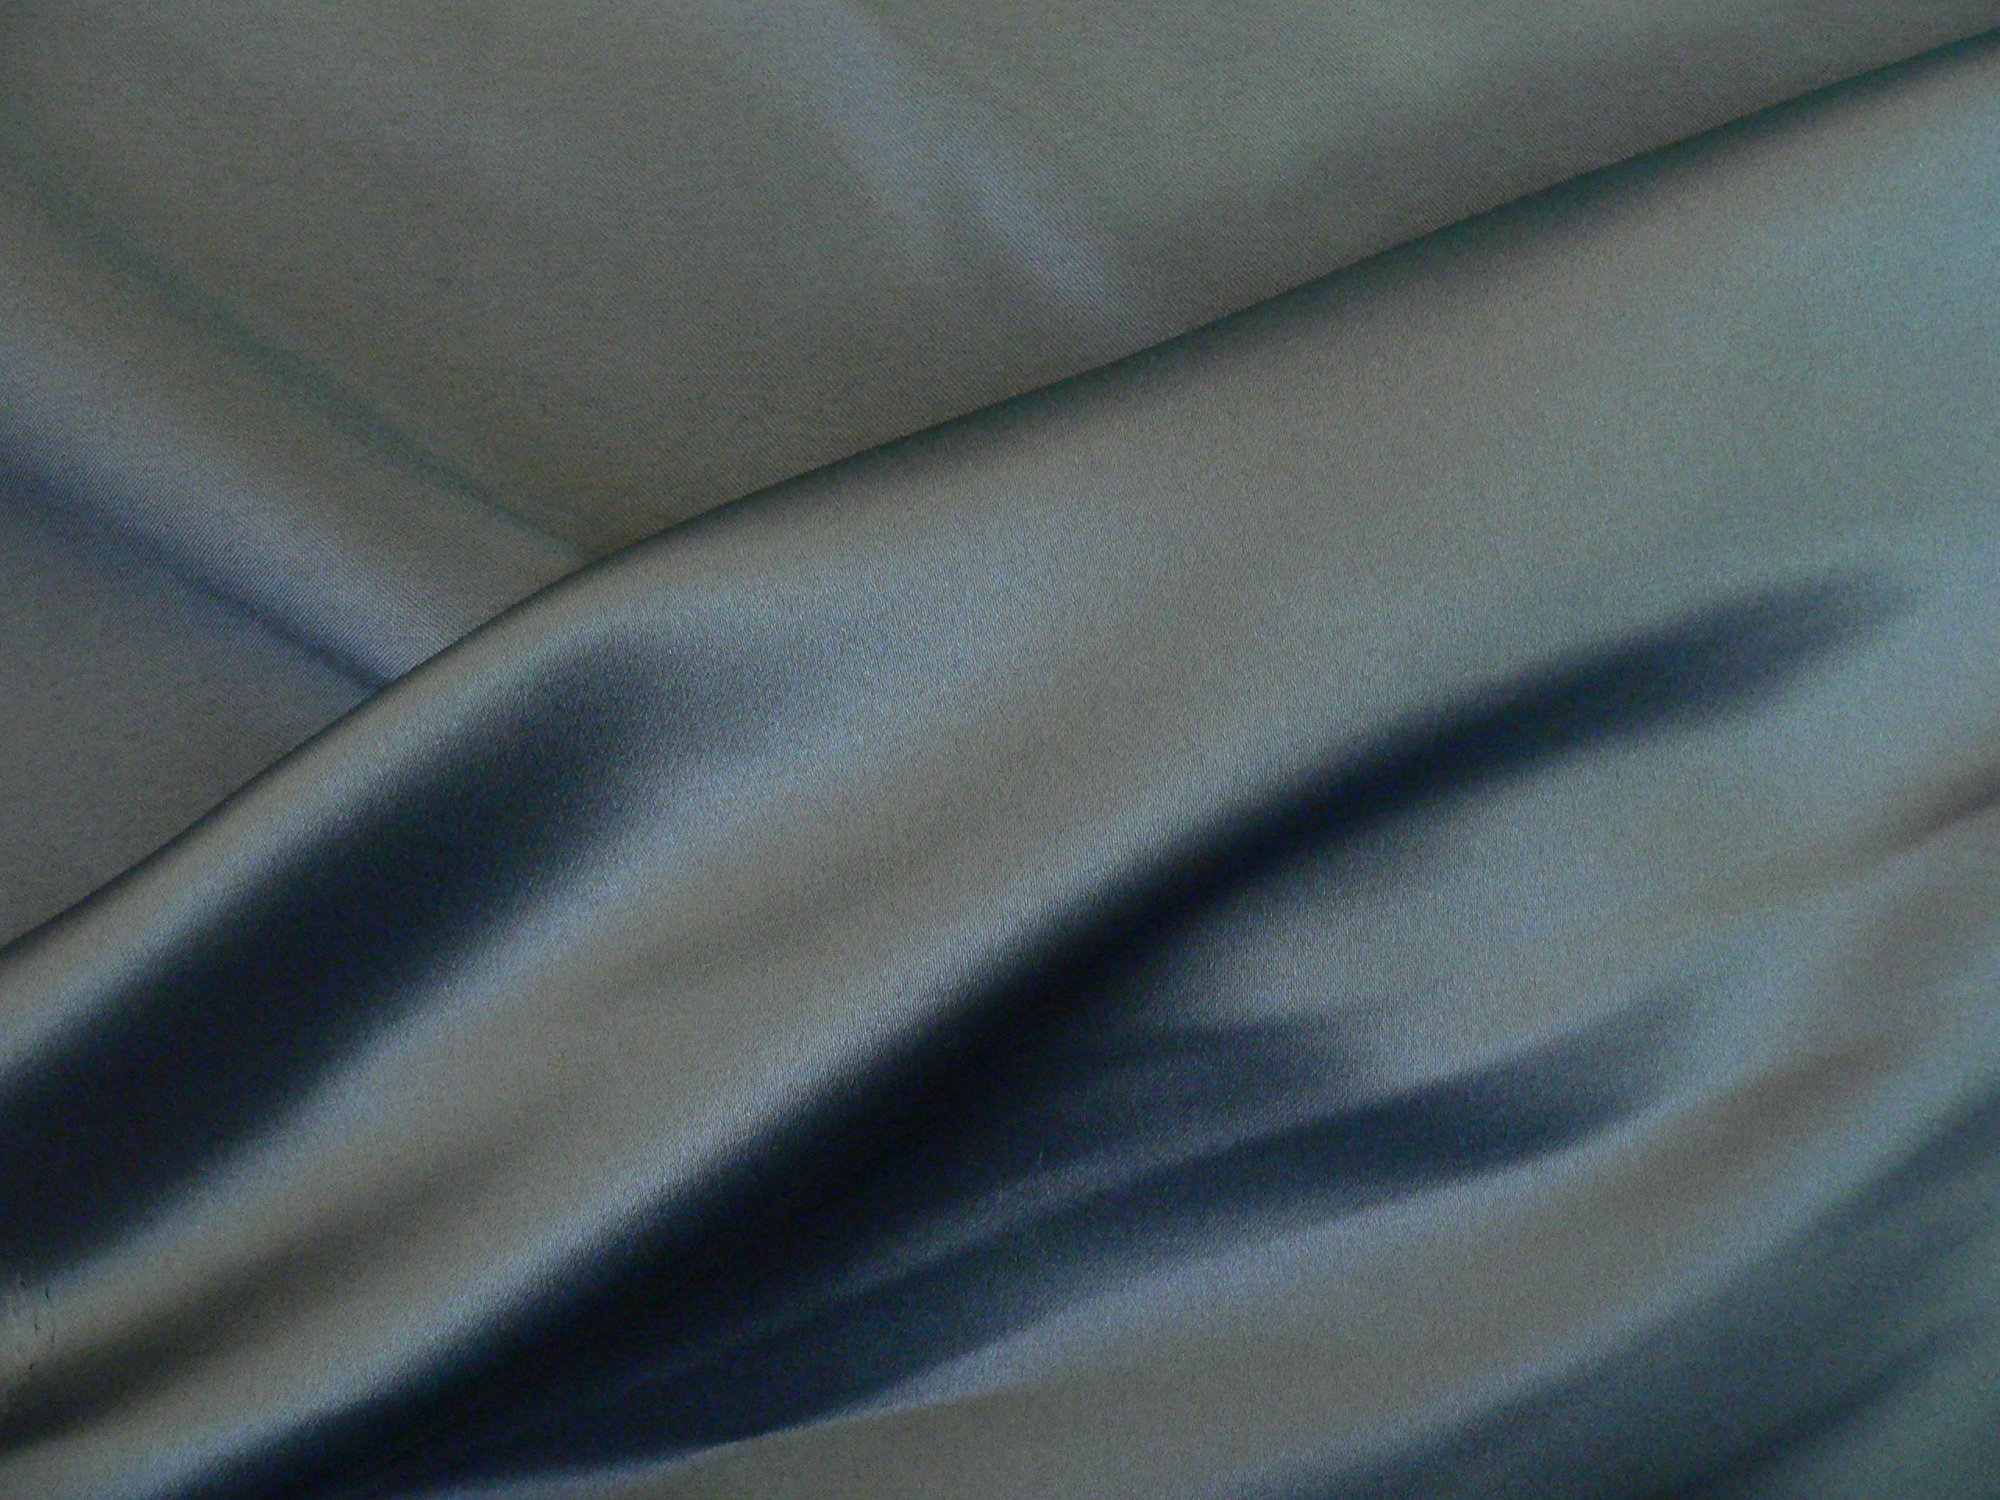 Duchesse Bridal satin, charcoal grey